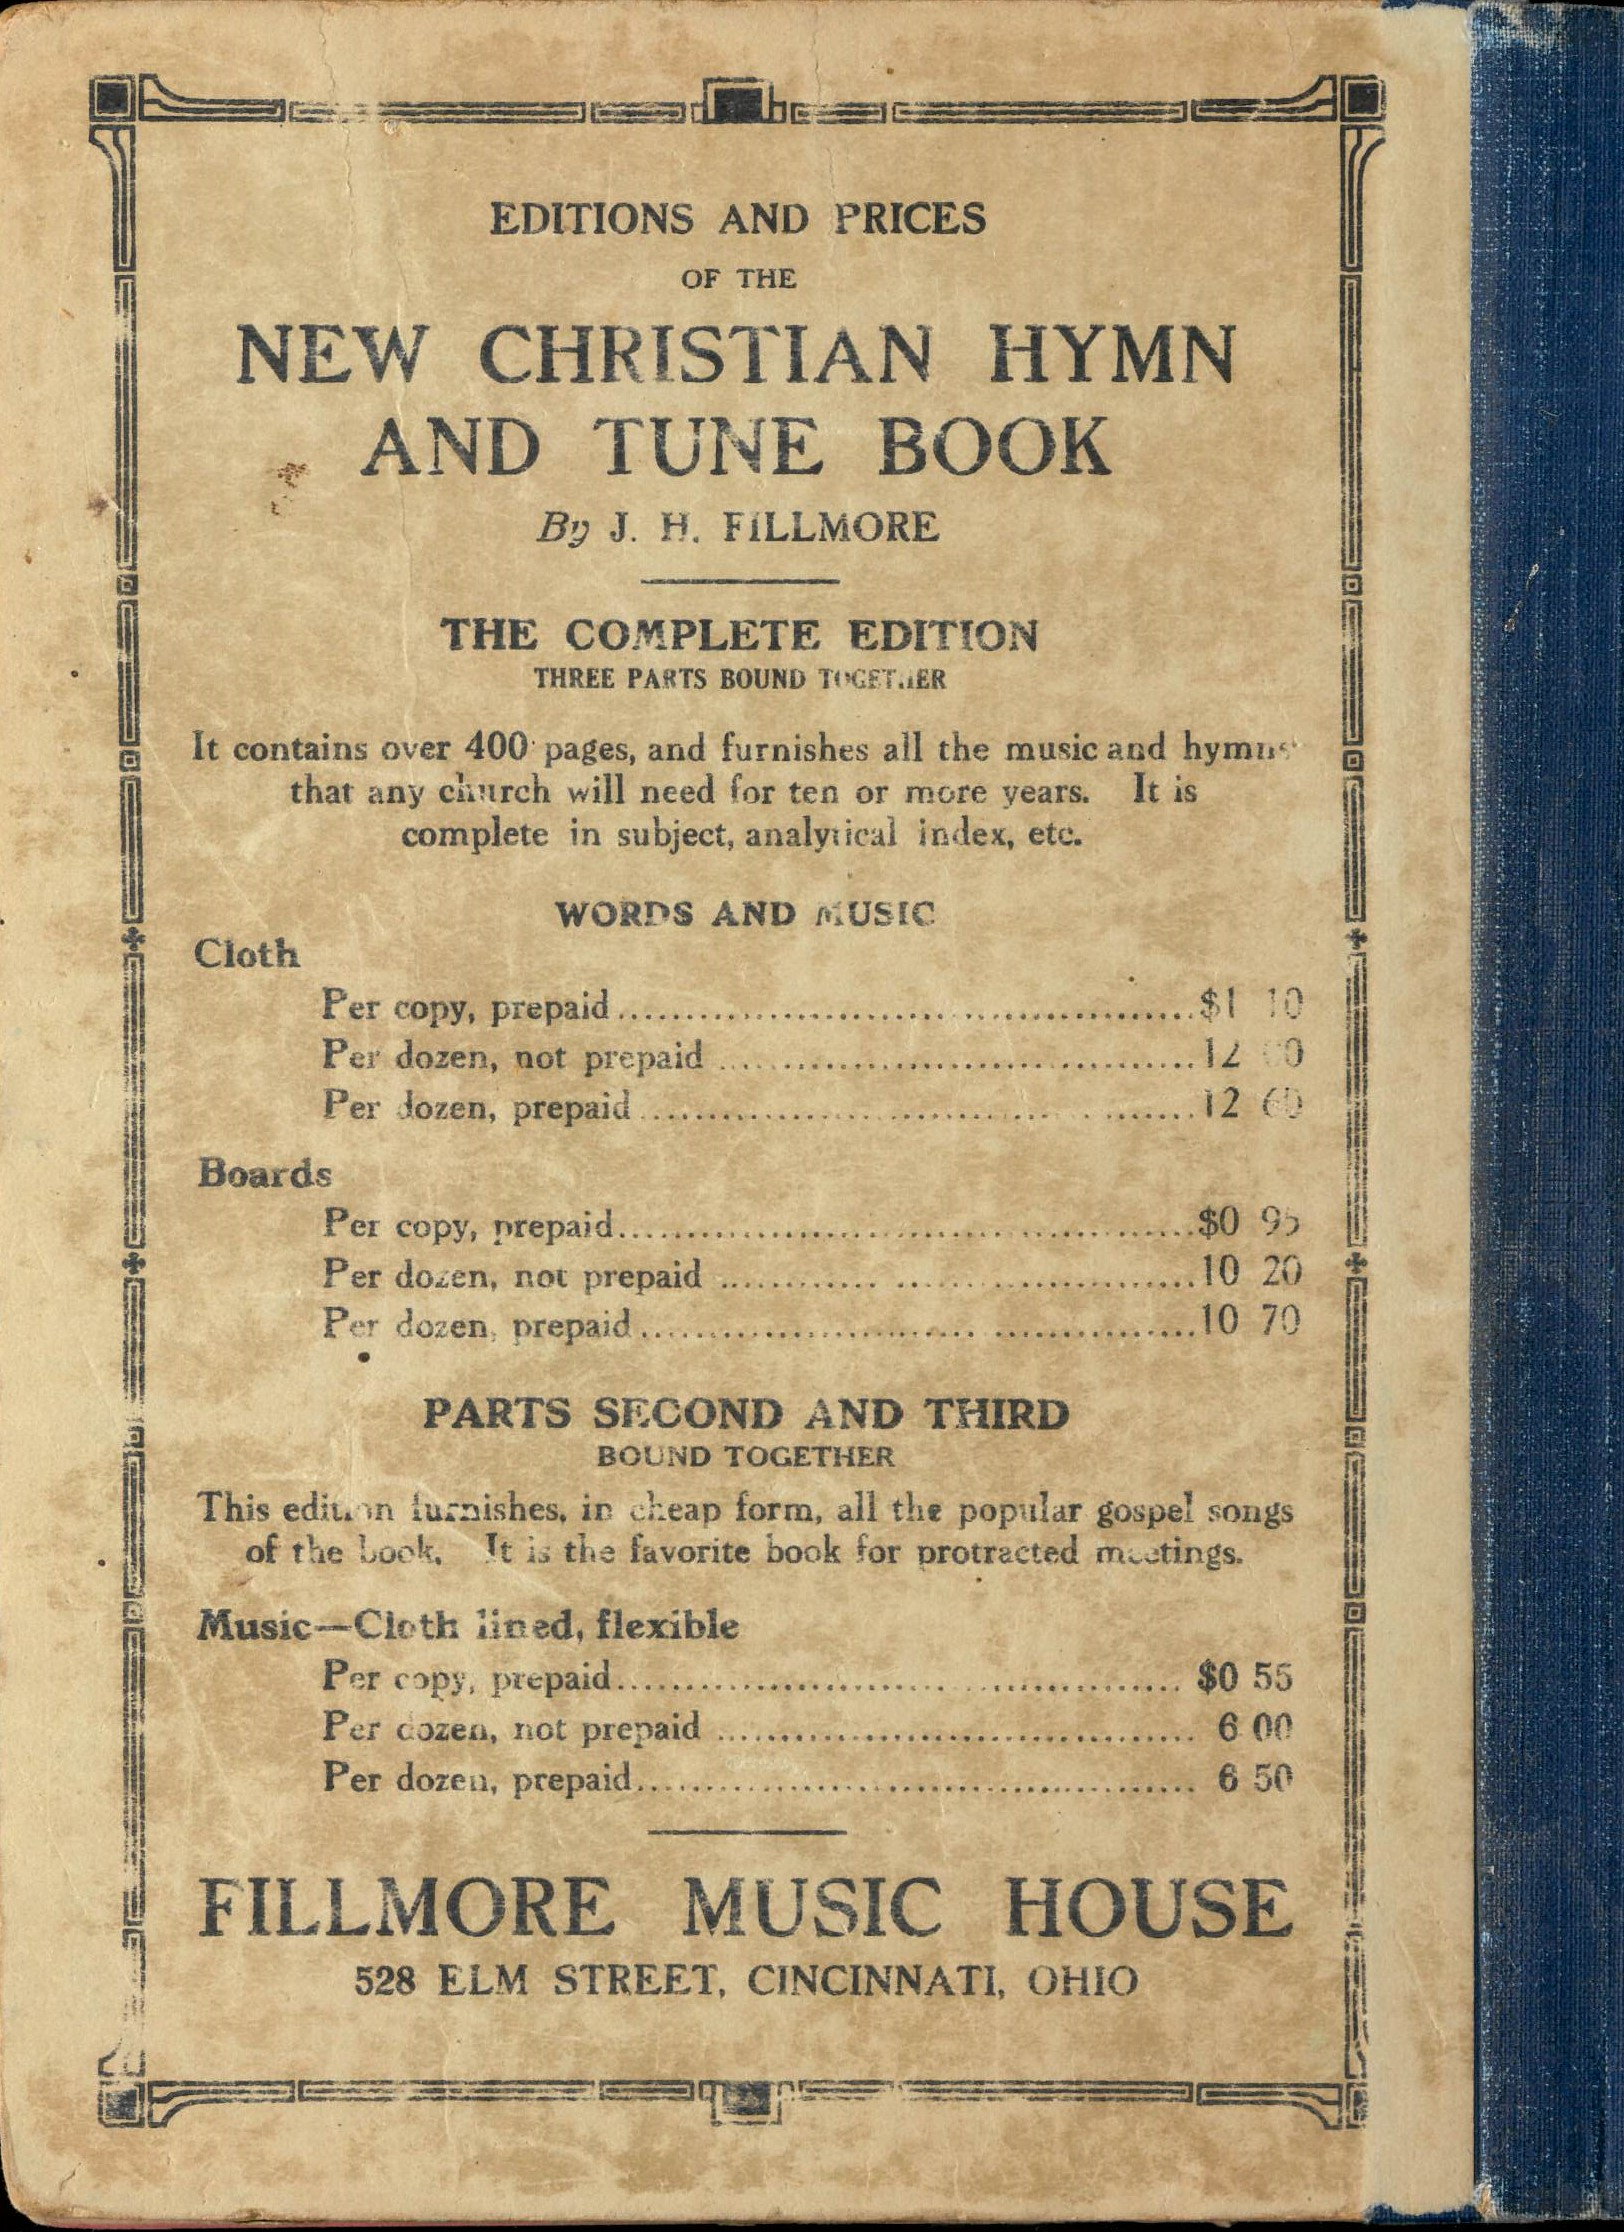 The New Christian Hymn and Tune Book: A Selection of Hymns and Tunes for Christian Worship. Fillmore Music House: Cincinnati, 1887. Rear cover.